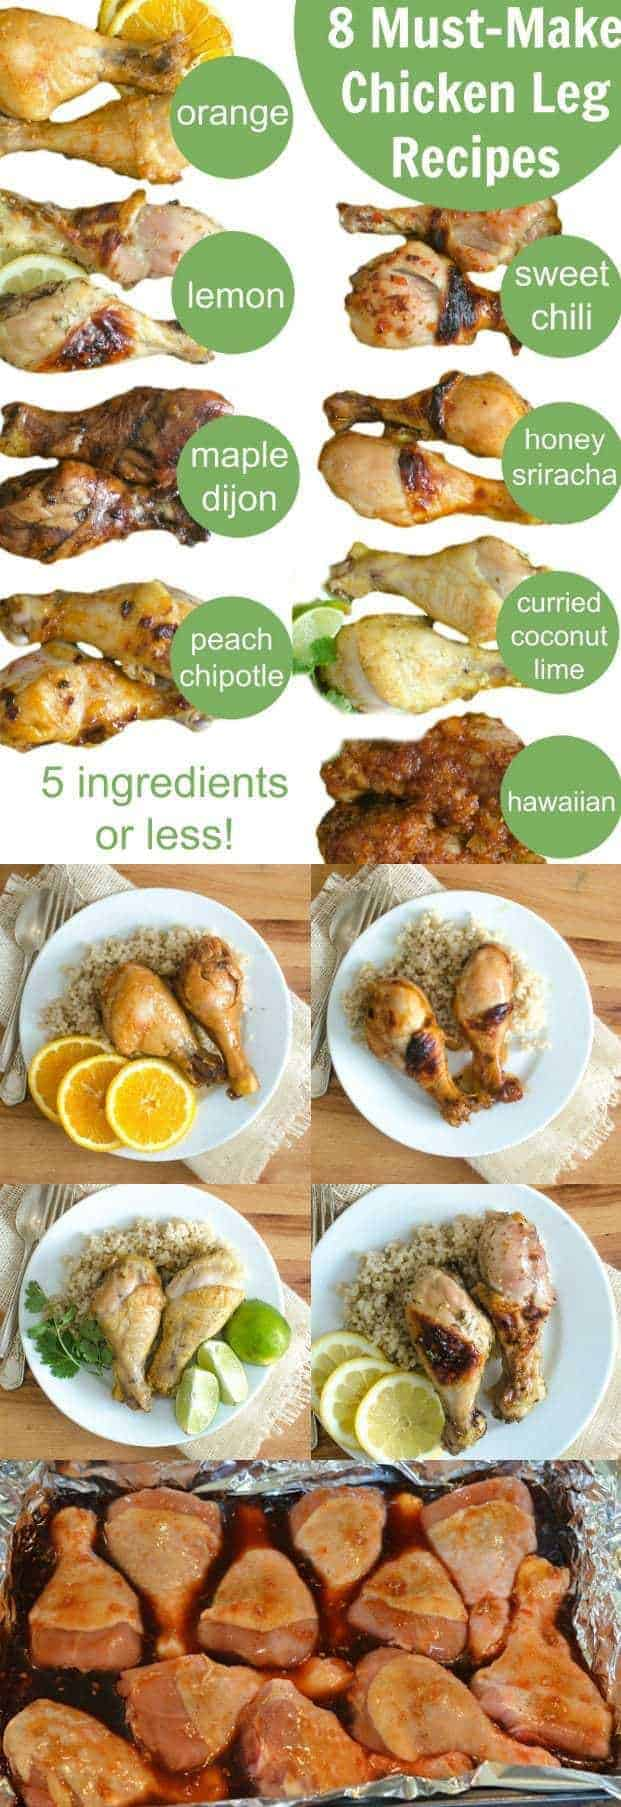 5 Ingredient or Less Chicken Leg Recipes